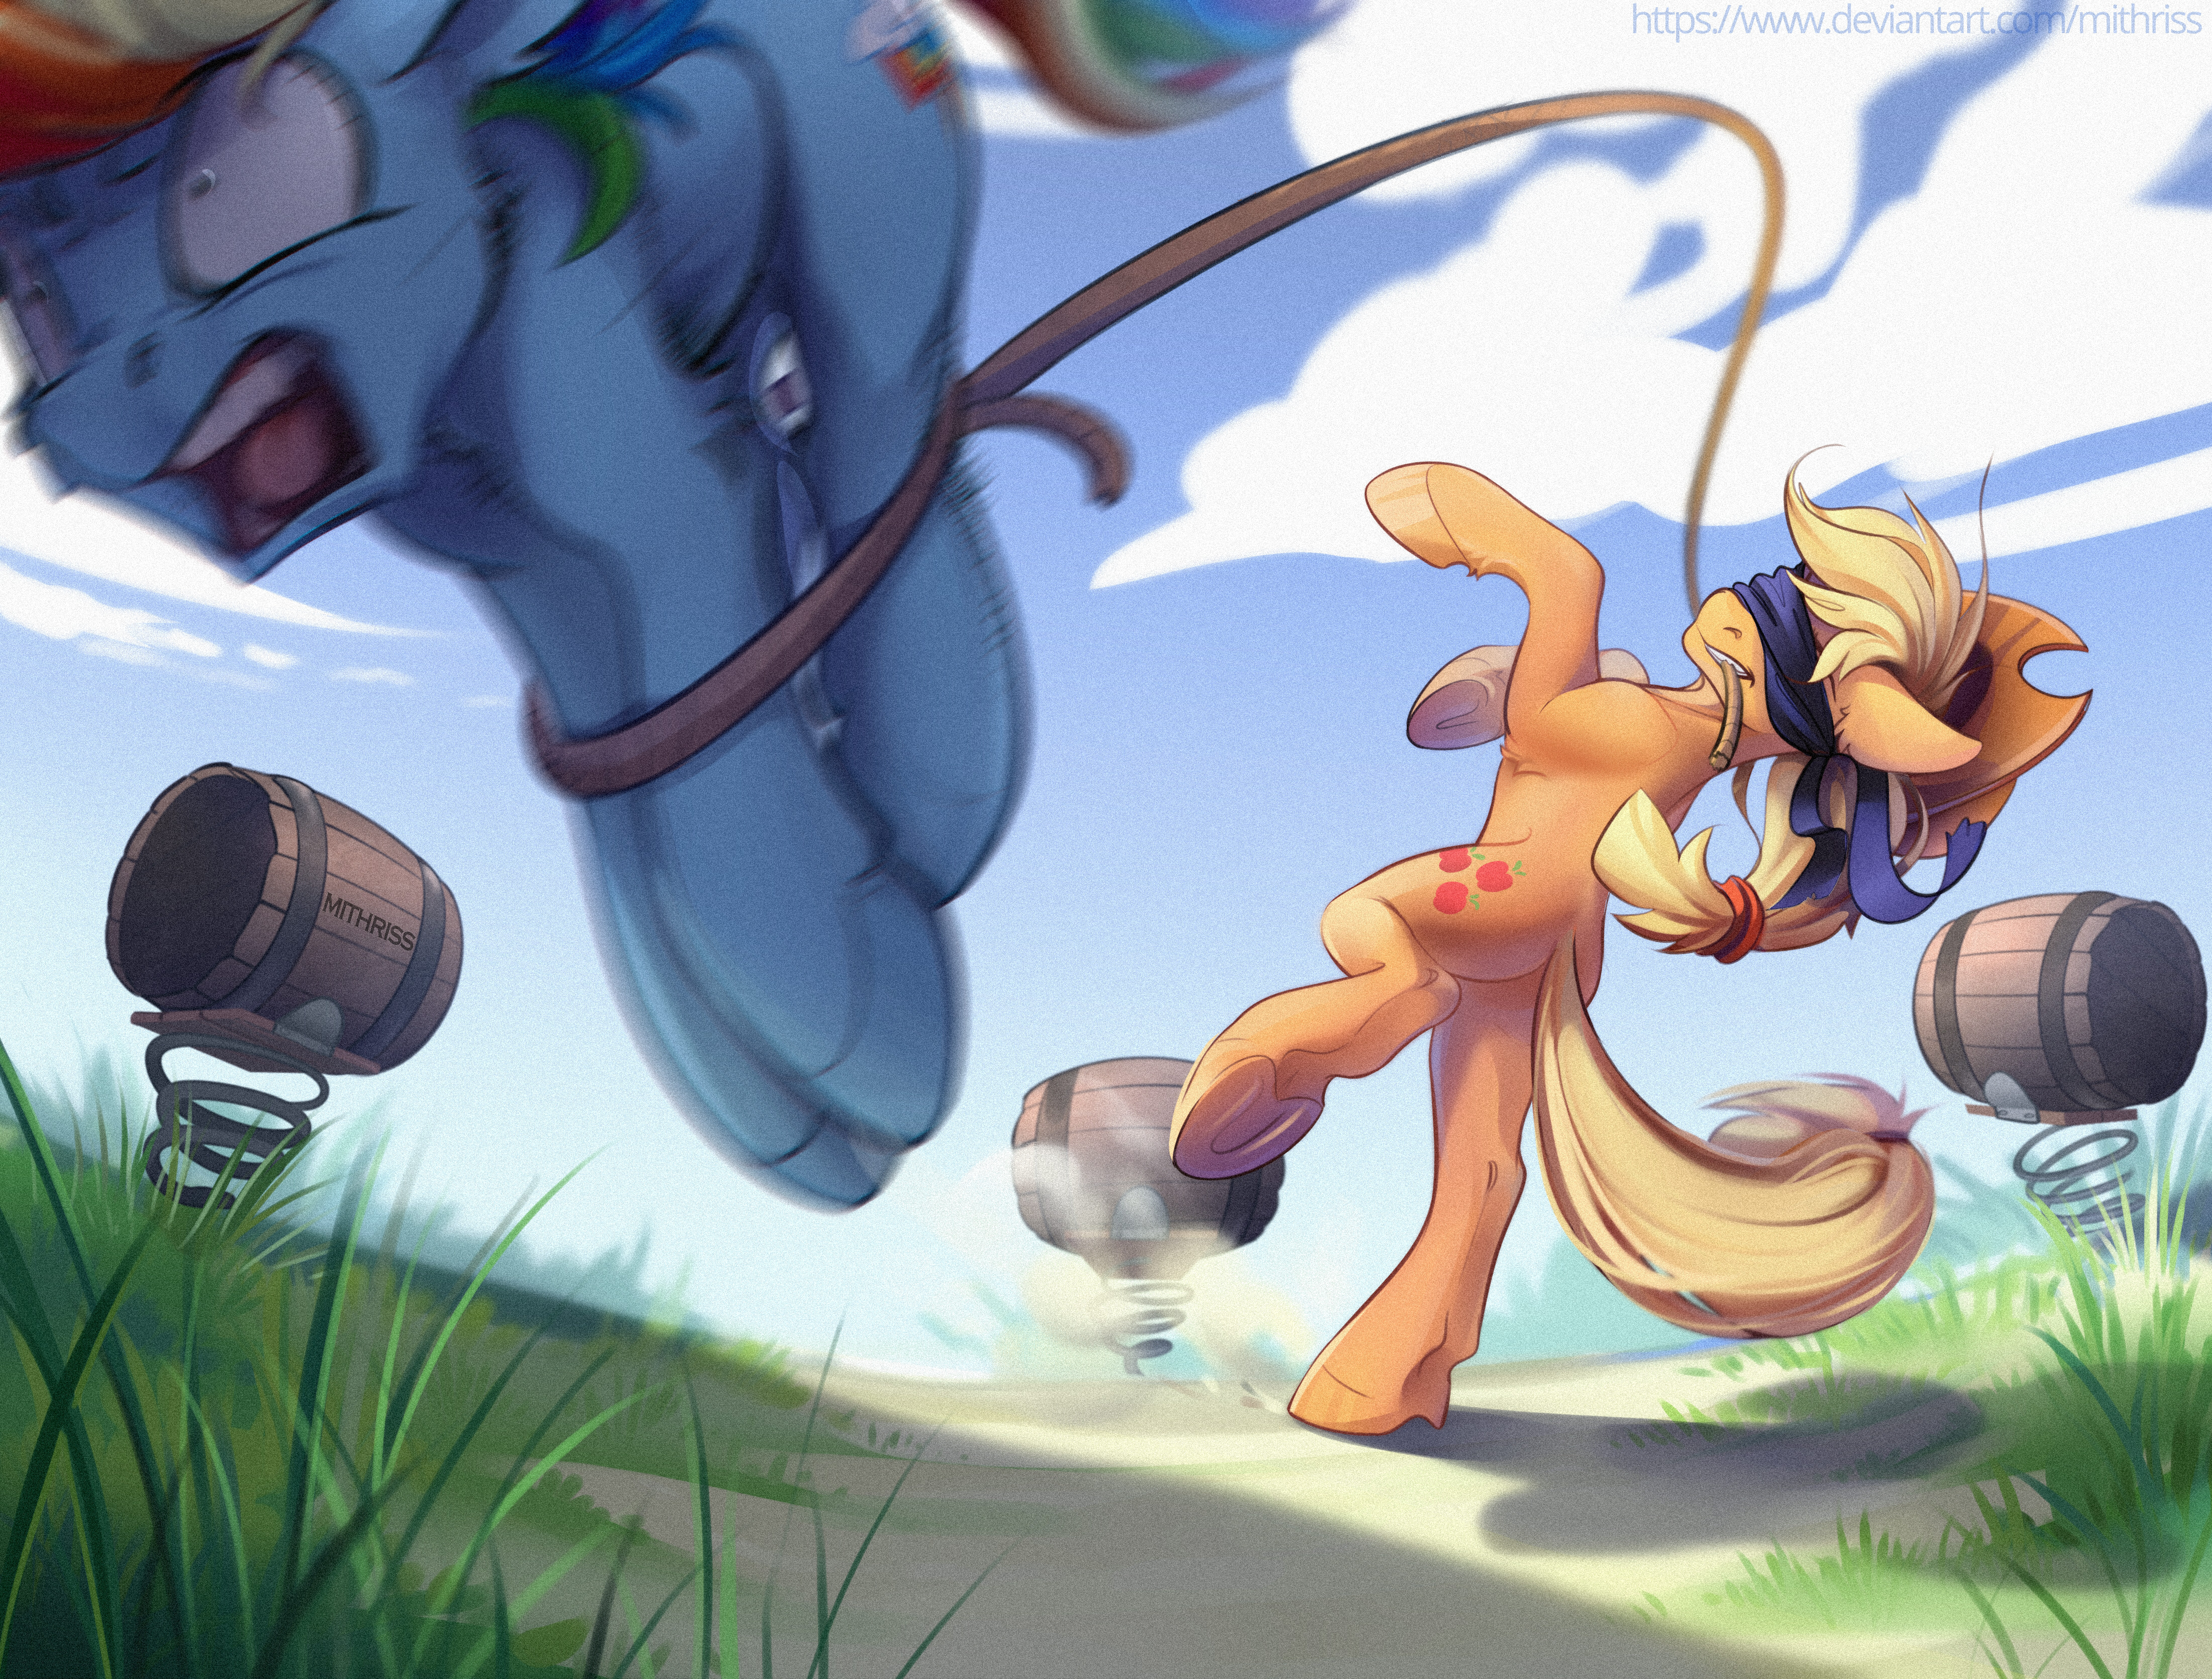 2608919__safe_artist-colon-mithriss_applejack_rainbow+dash_earth+pony_pegasus_pony_barrel_bipedal_blindfold_bound_duo_lasso_mouth+hold_open+mouth_rope_screaming.jpg